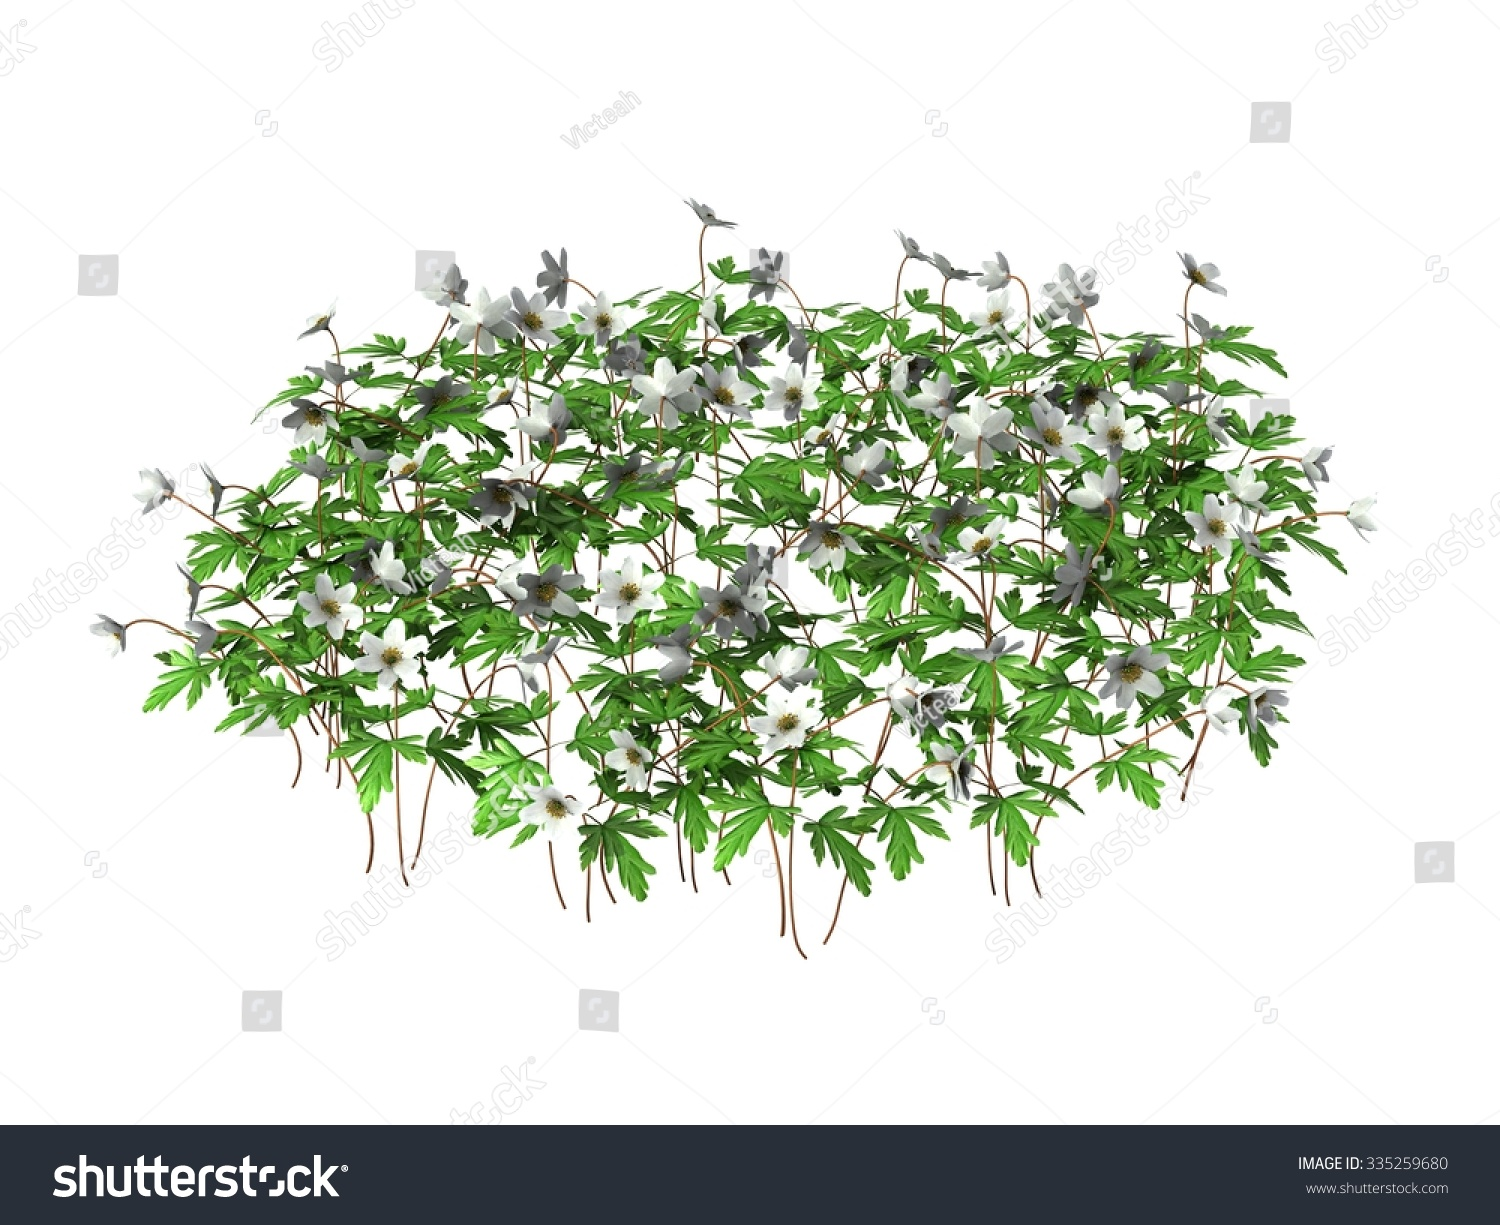 Green Plants With Flowers Isolated On White Background Ez Canvas